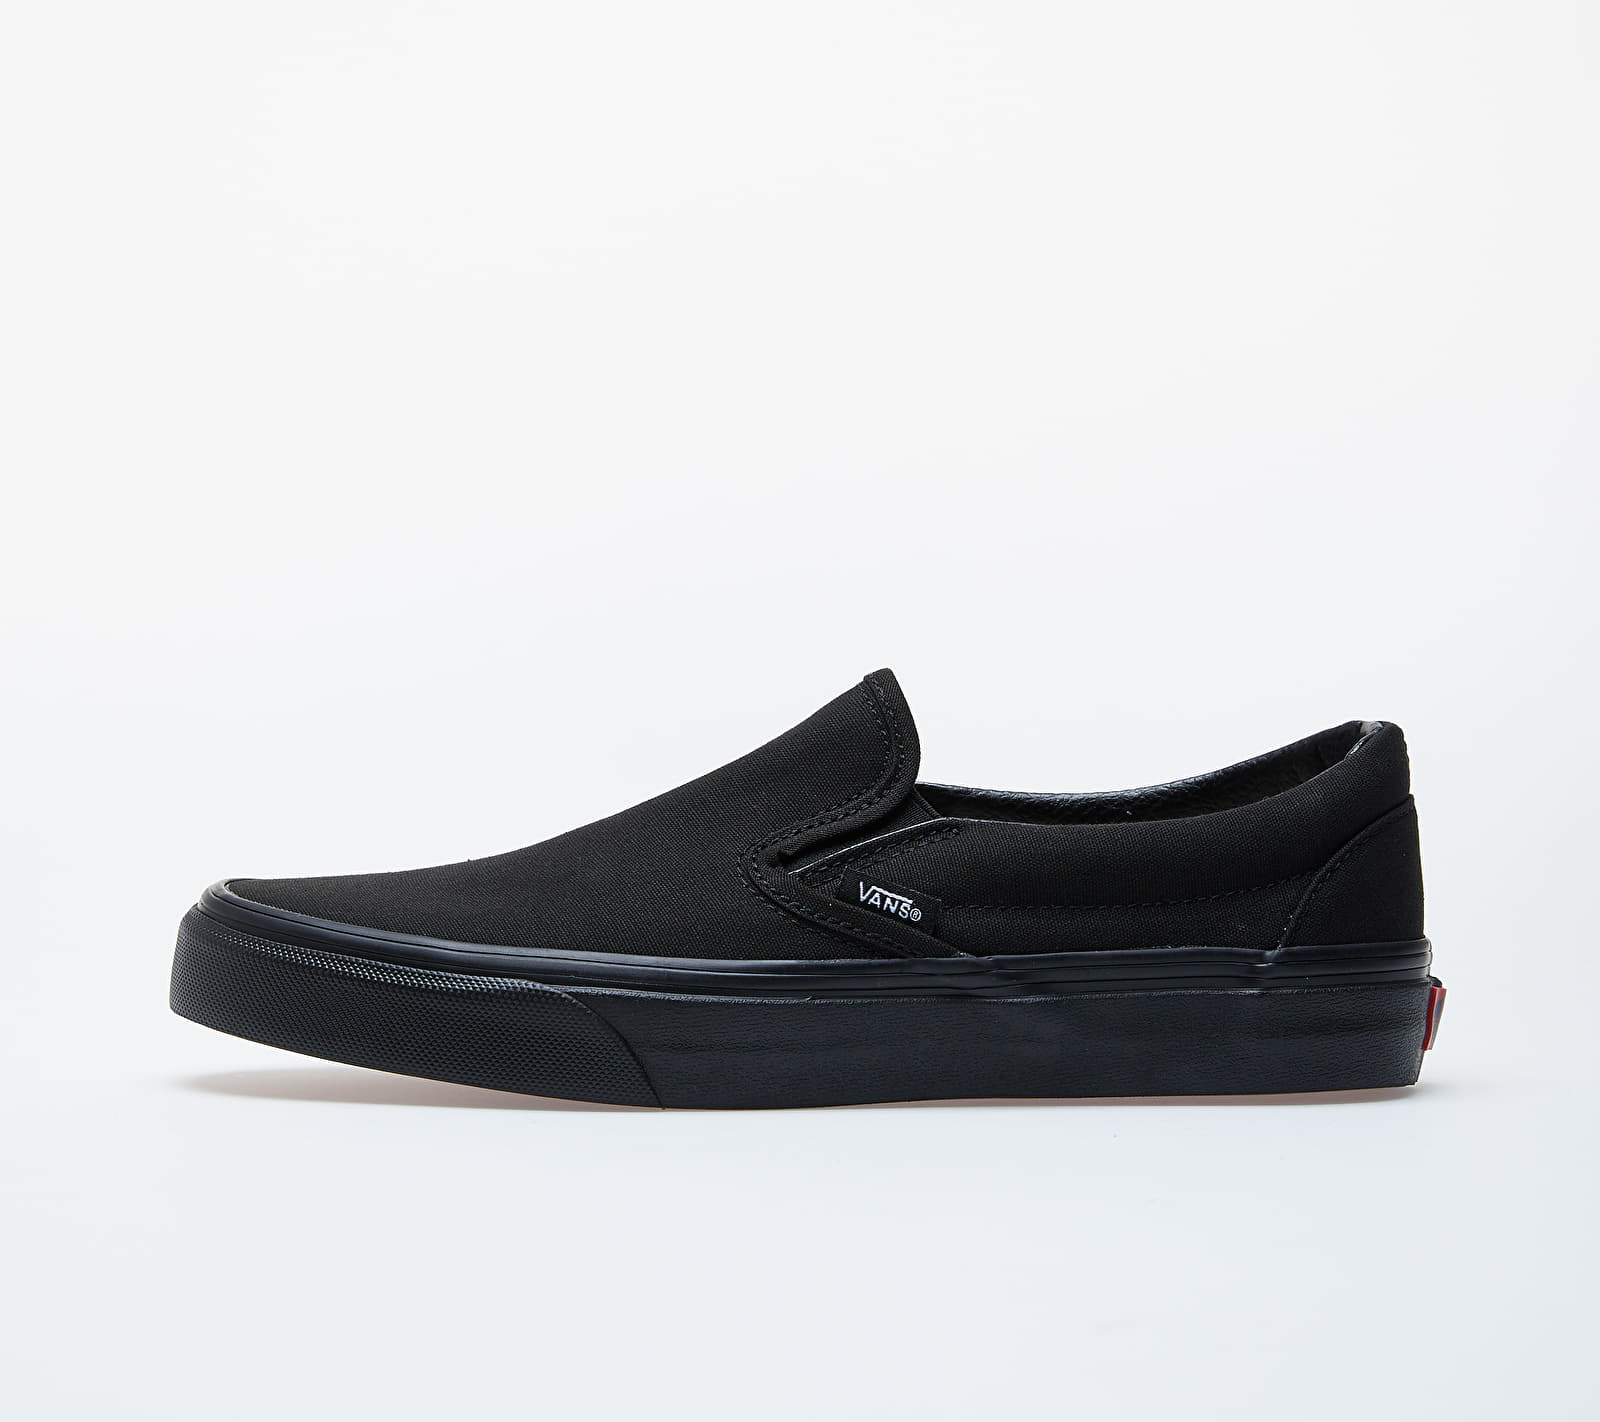 Vans Classic Slip-On Black/ Black EUR 36